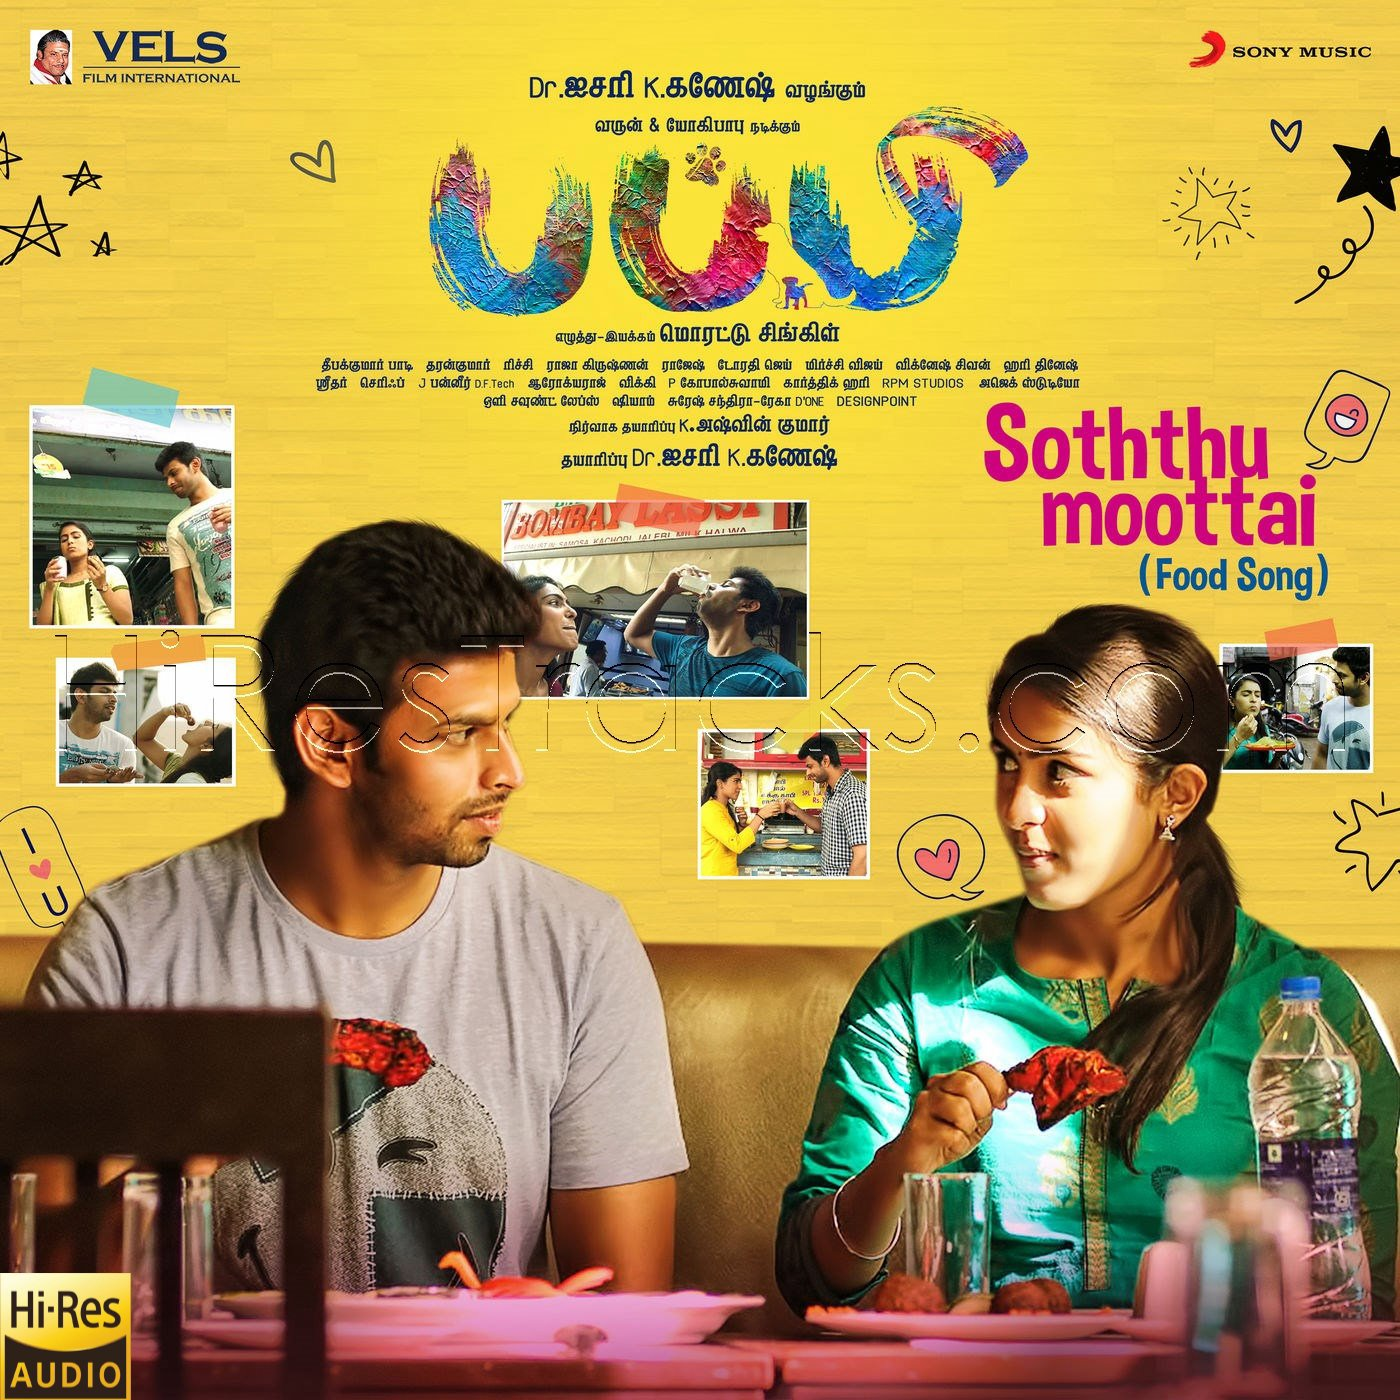 Soththumoottai (Food Song) (From Puppy) (2019) (Dharan Kumar) (Sony Music) [24 BIT – 48 KHZ] [Digital-RIP-FLAC]